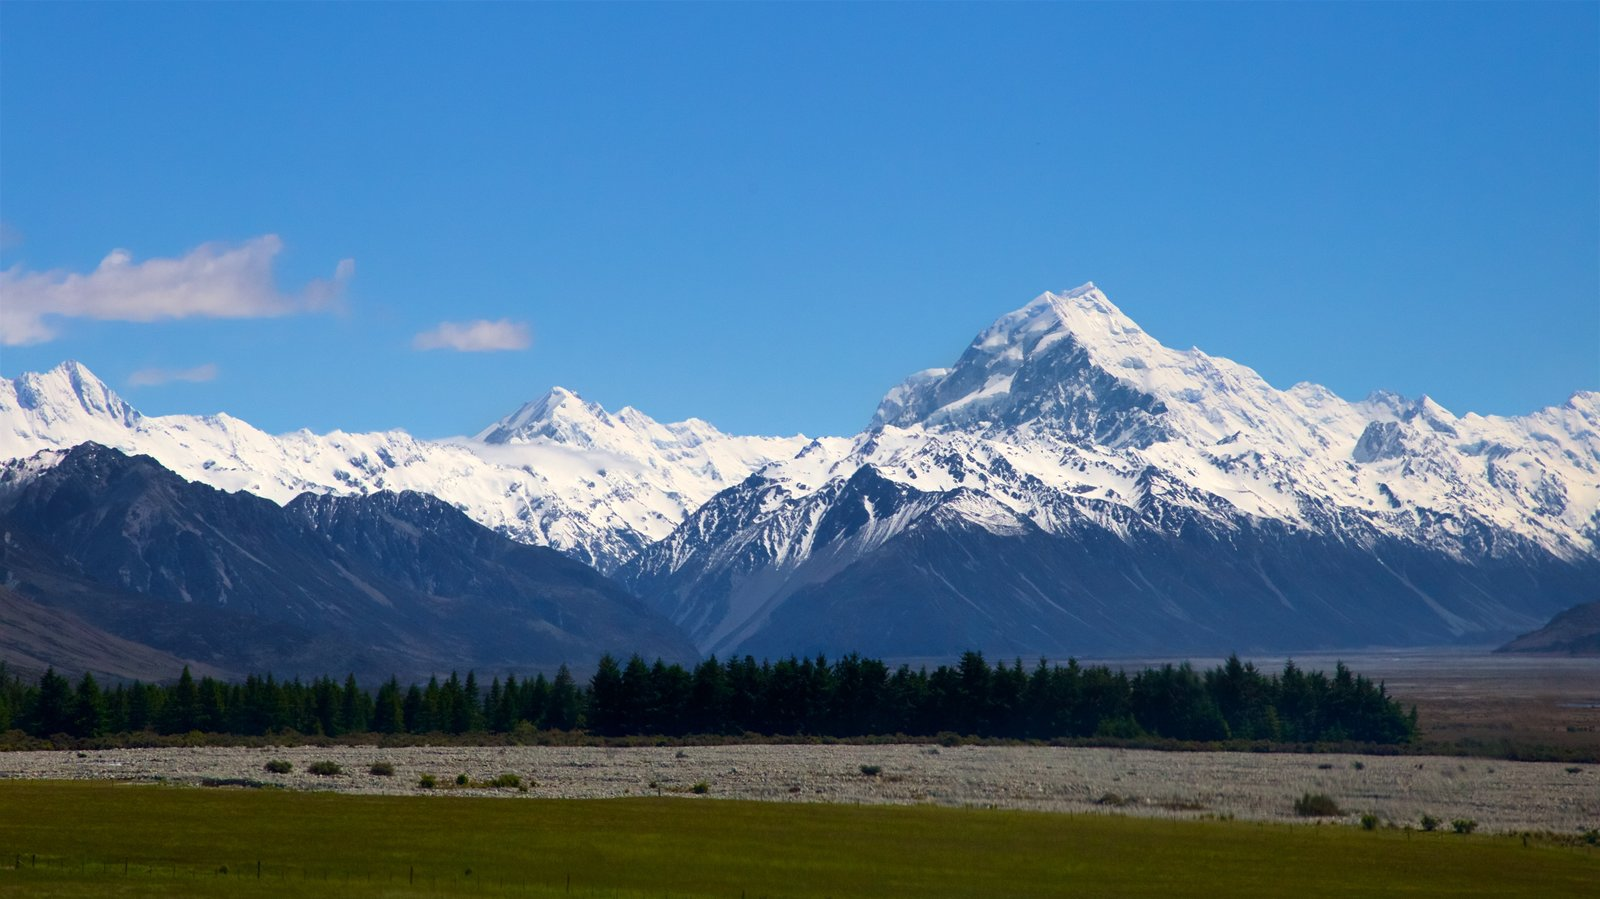 Mount Cook National Park which includes mountains, tranquil scenes and snow